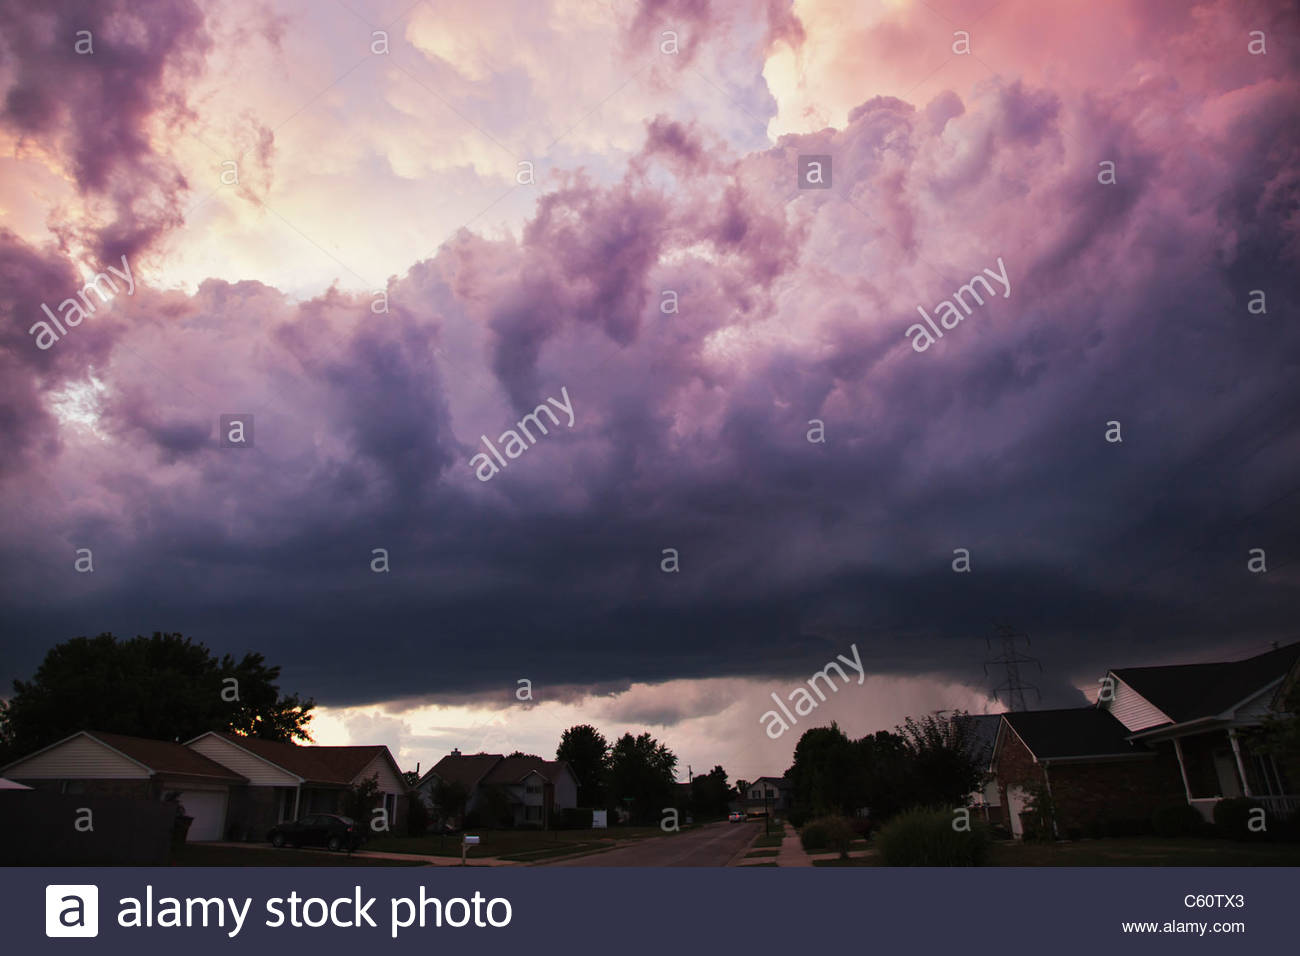 Storm Clouds, Columbus, Indiana - Stock Image